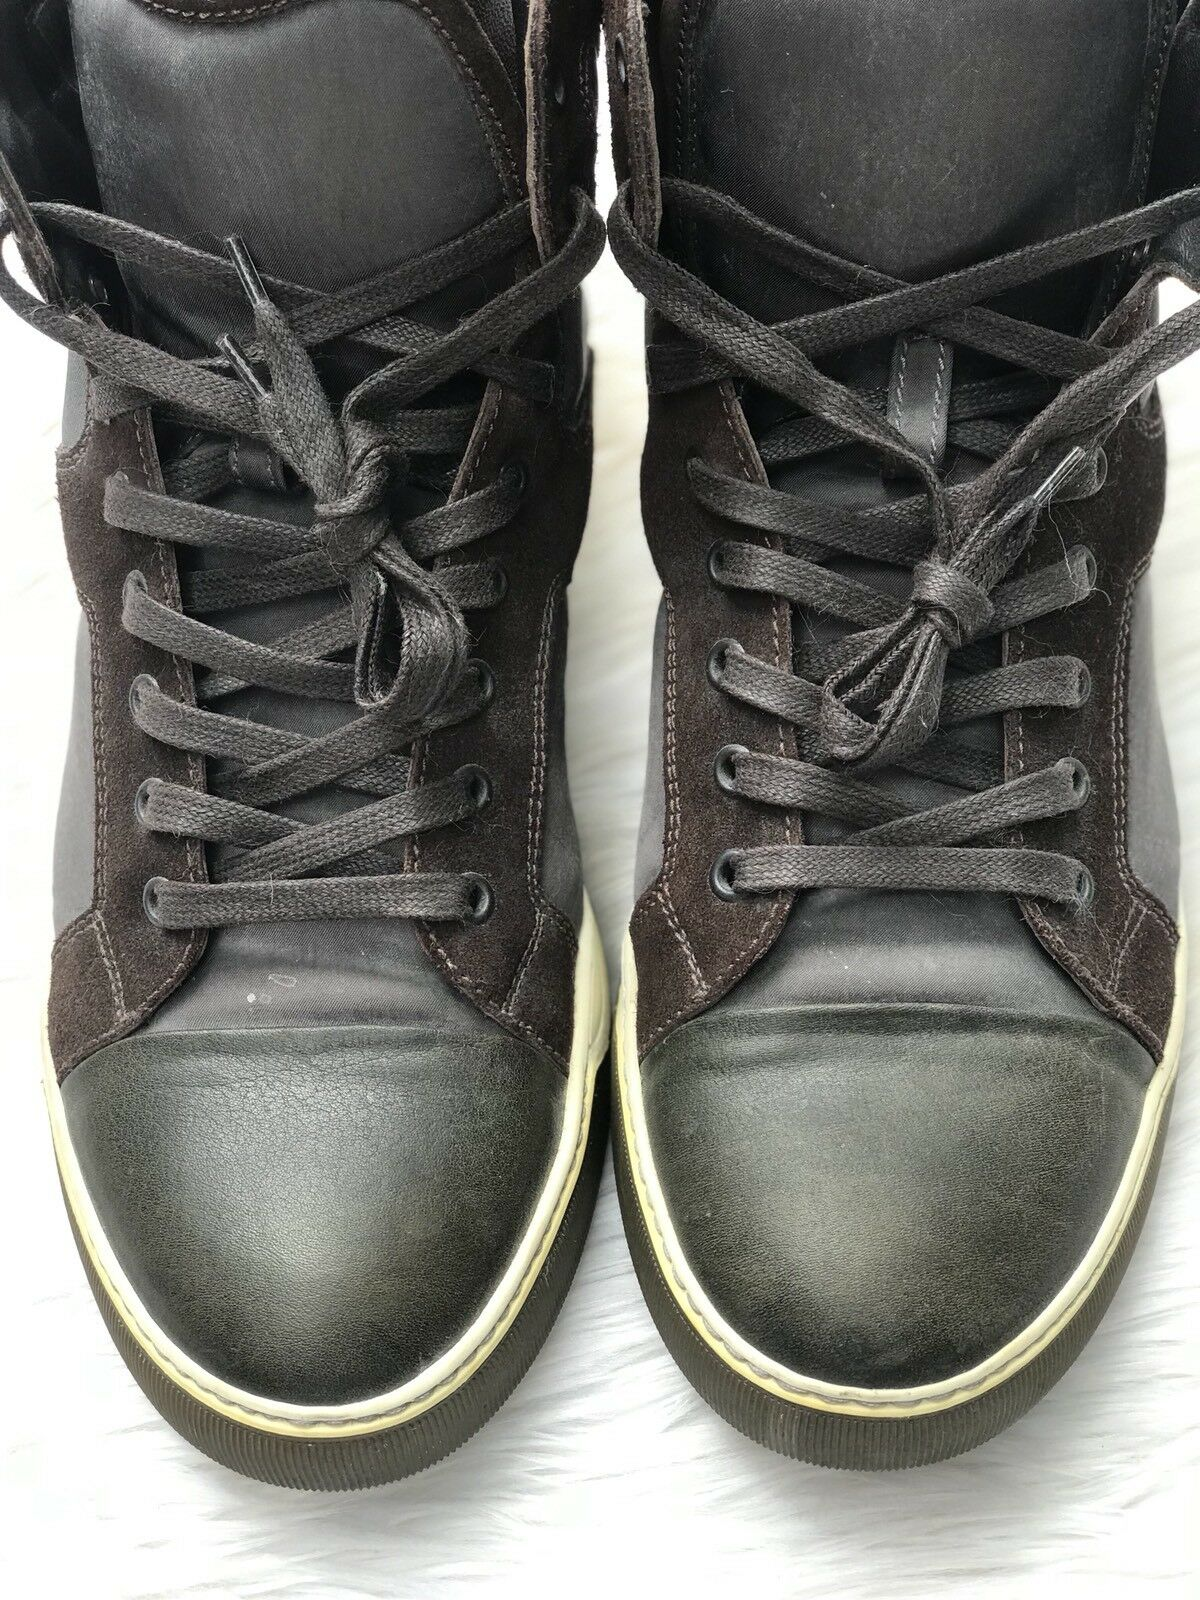 Lanvin mixed-media high-top sneaker shoe in Black  bluee  Brown Size 9